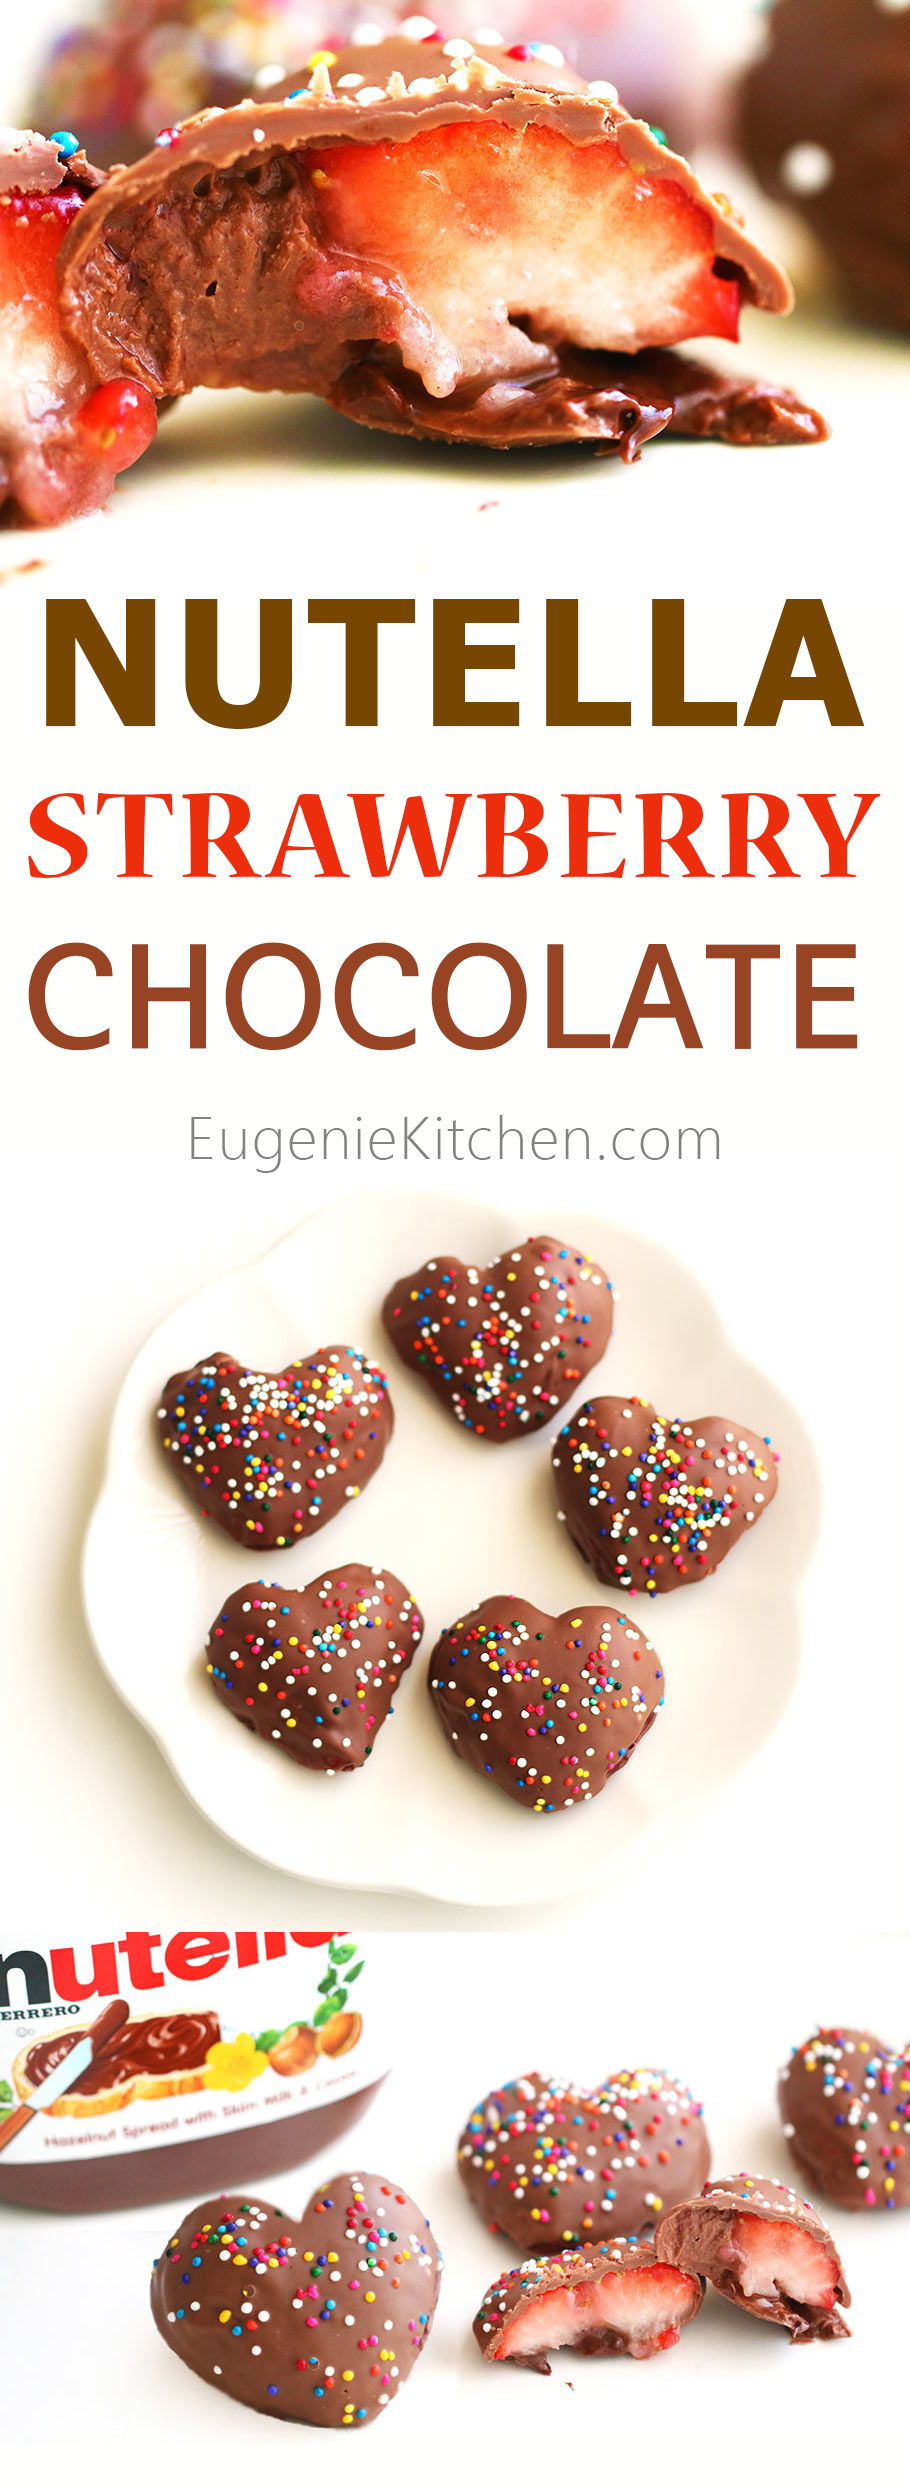 Nutella strawberry chocolate for your Valentine. No-bake, 4 ingredients, ready in 30 minutes. Look, how scrumptious!